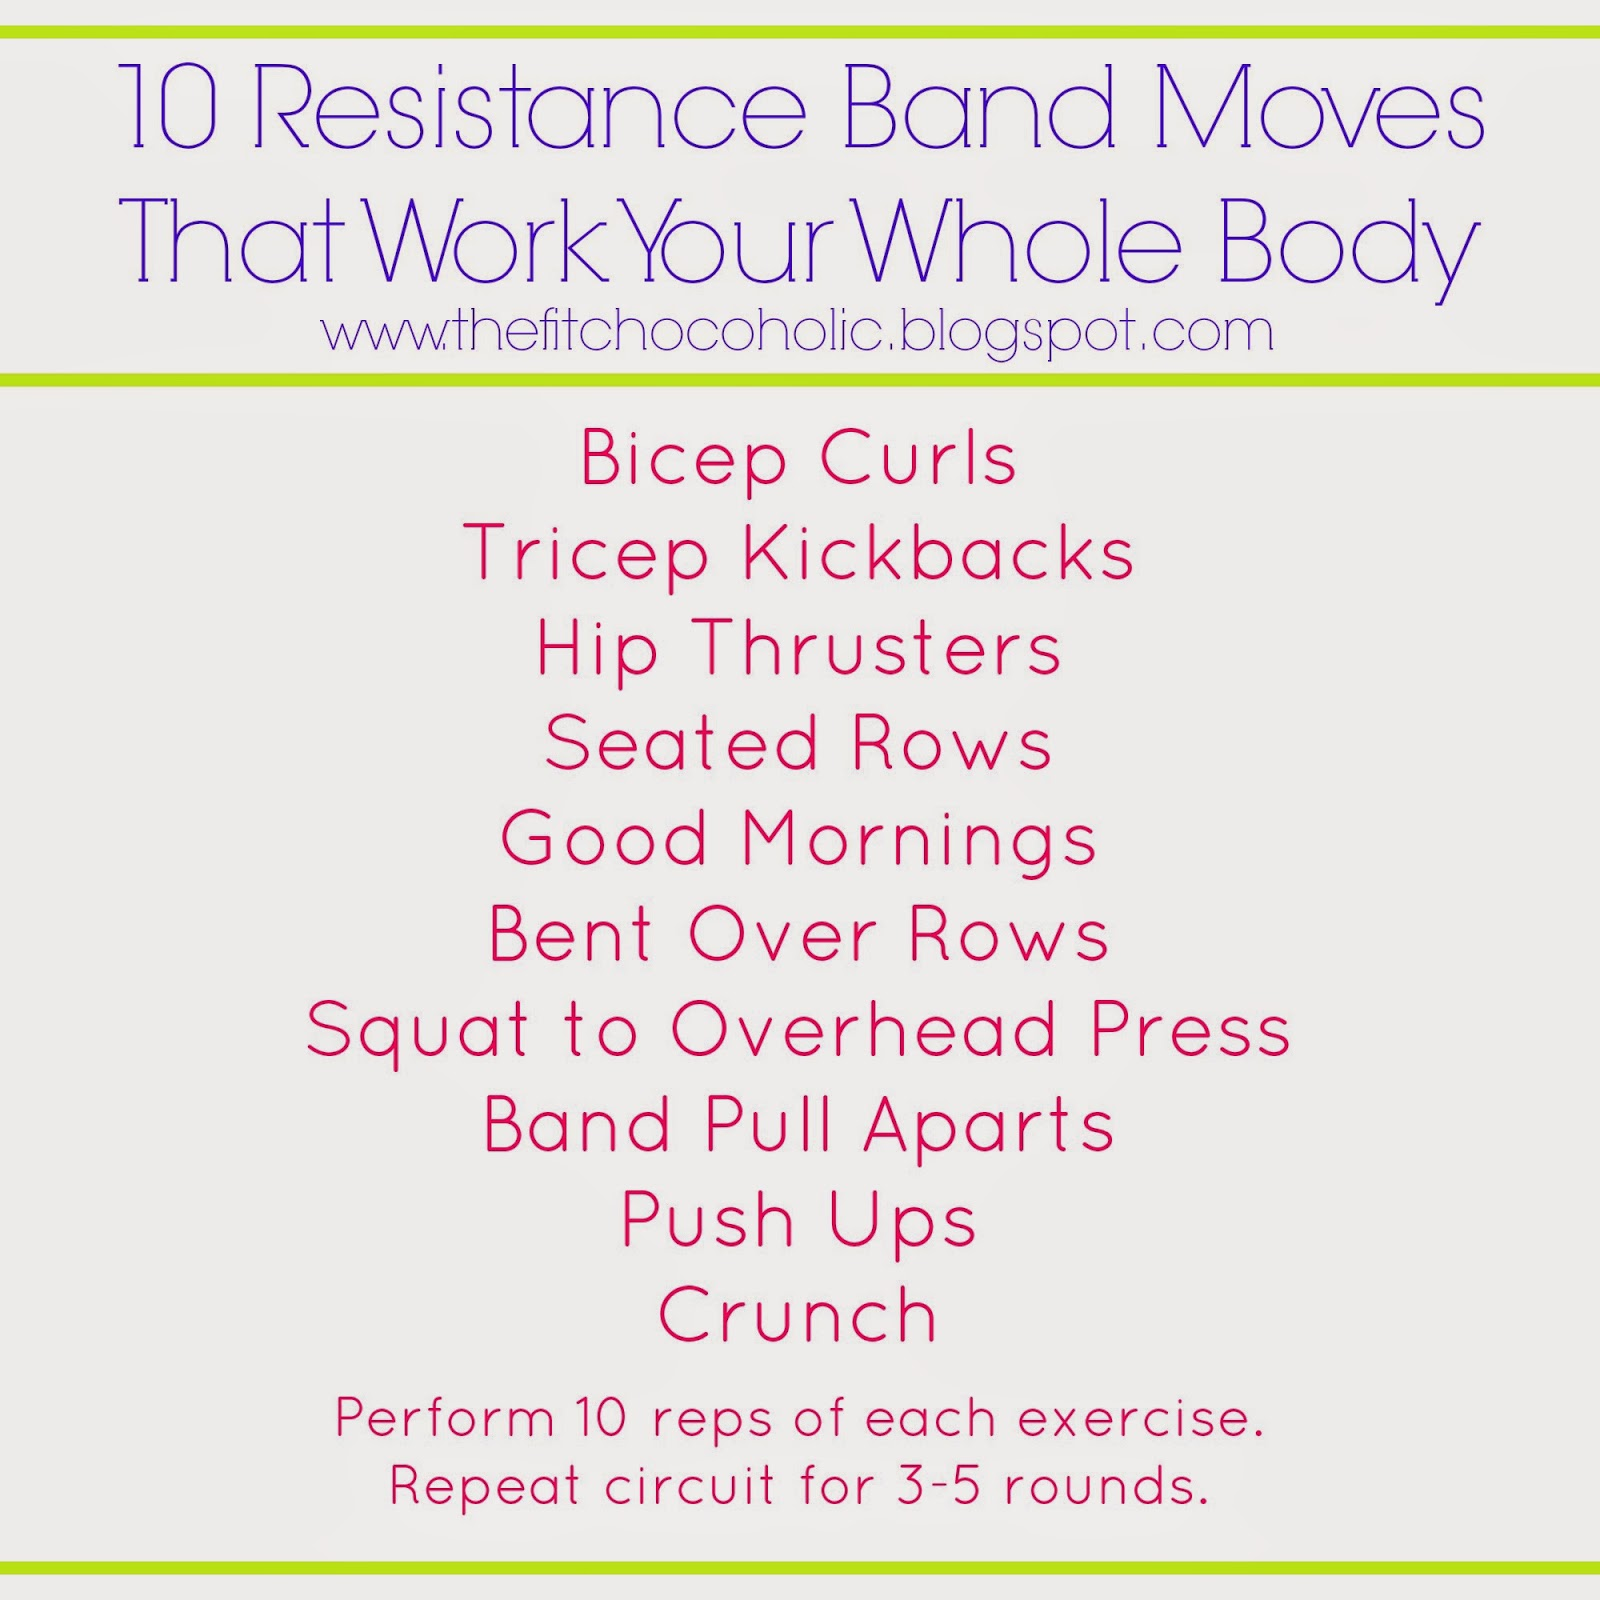 10 Resistance Band Moves That Work Your Whole Body